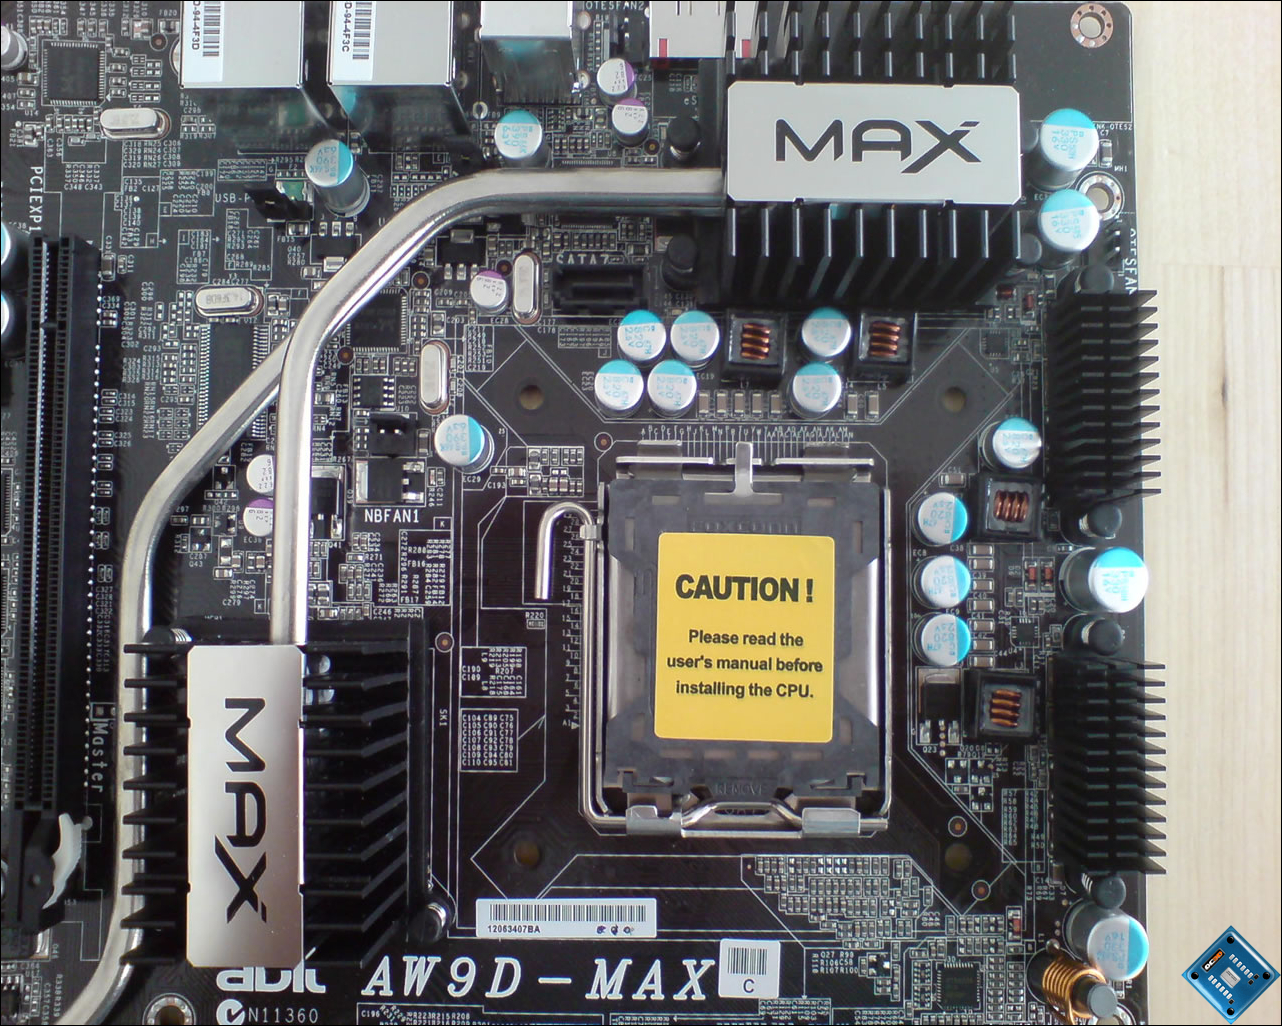 Abit AW9D Max socket 775 Motherboard | The Board - Layout